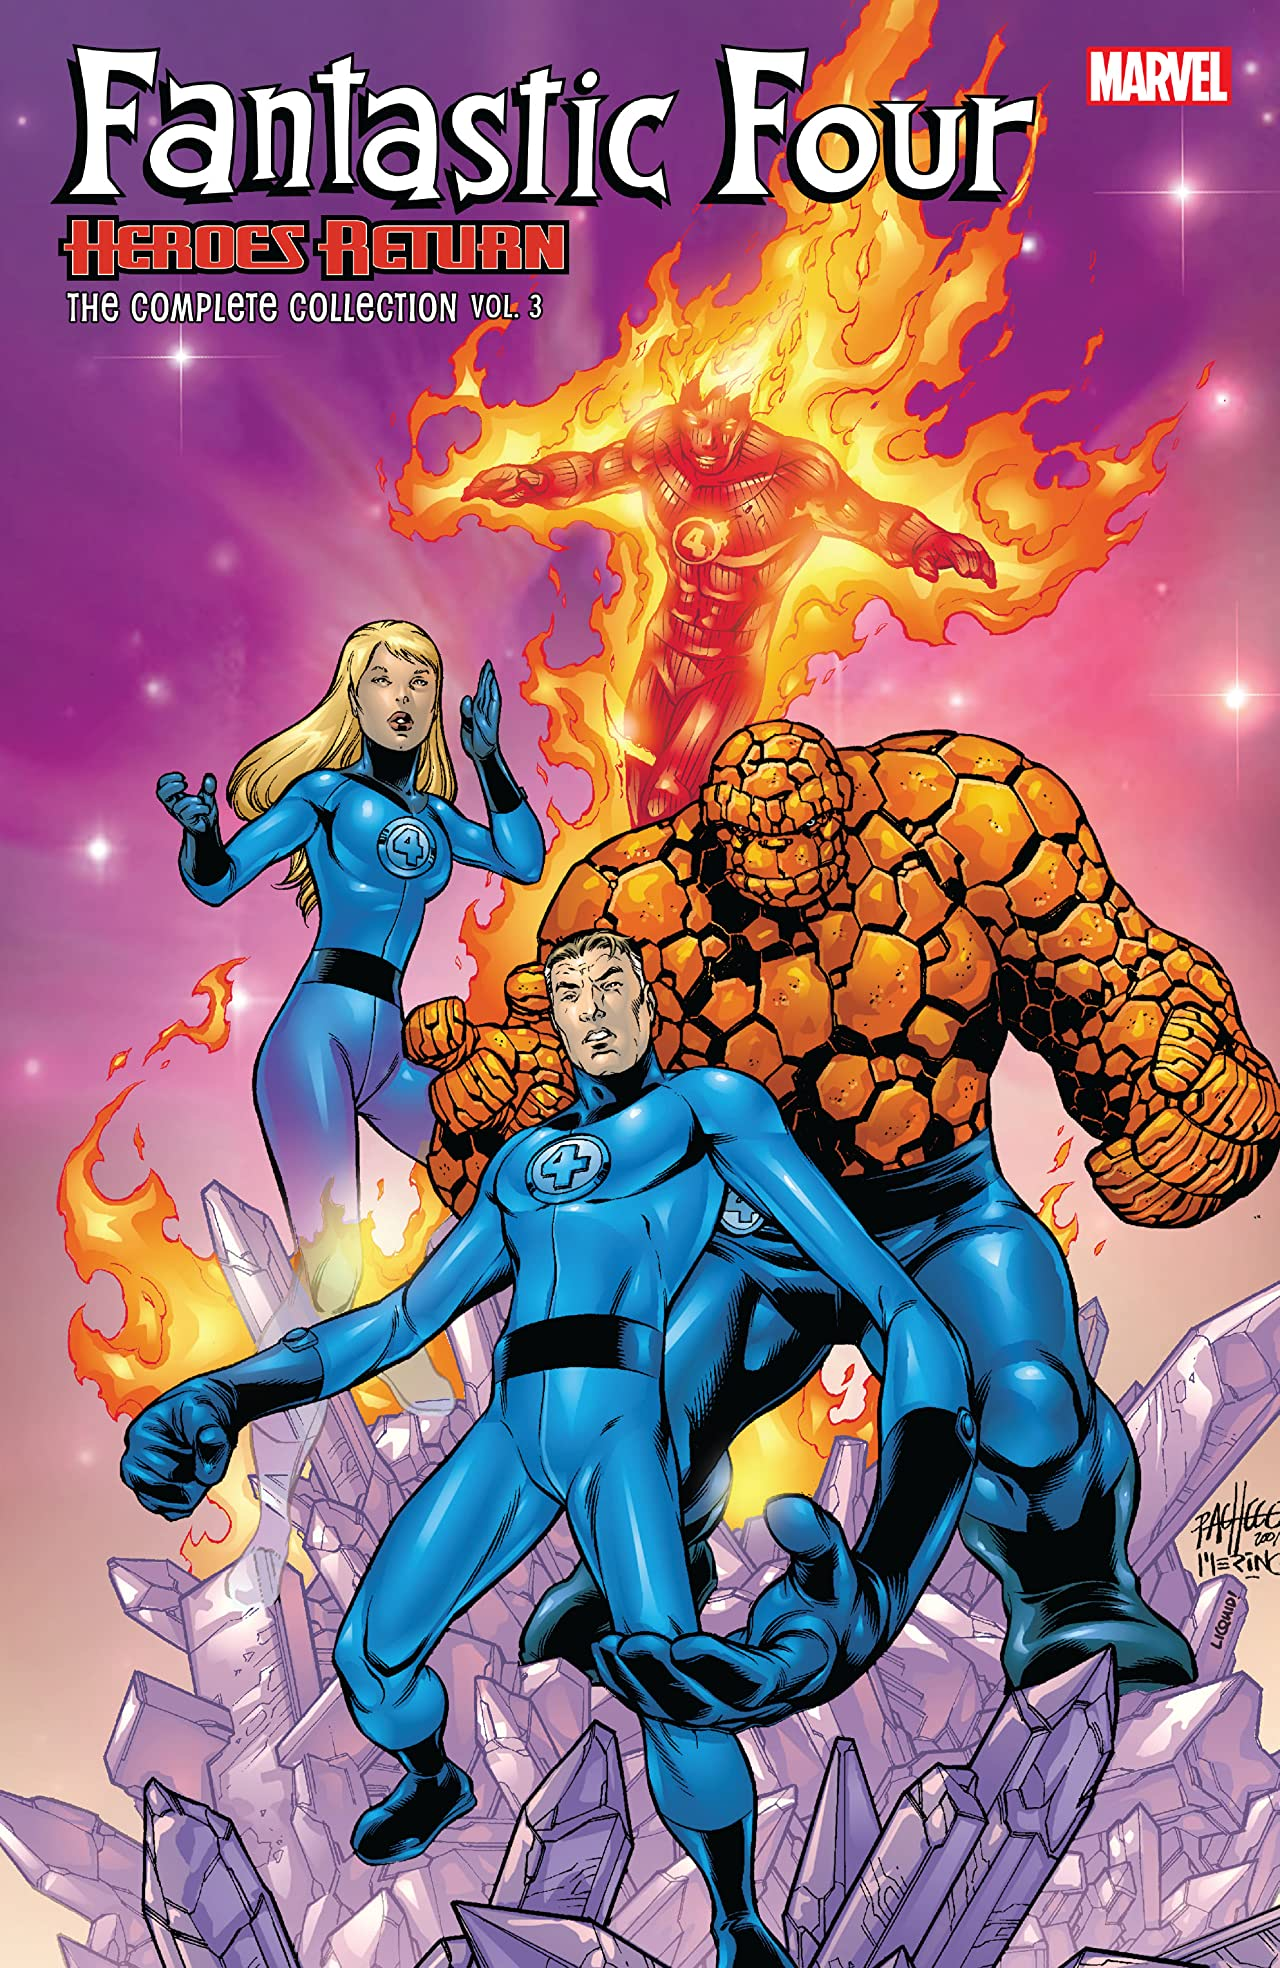 Fantastic Four: Heroes Return - The Complete Collection Vol. 3 (Trade Paperback)